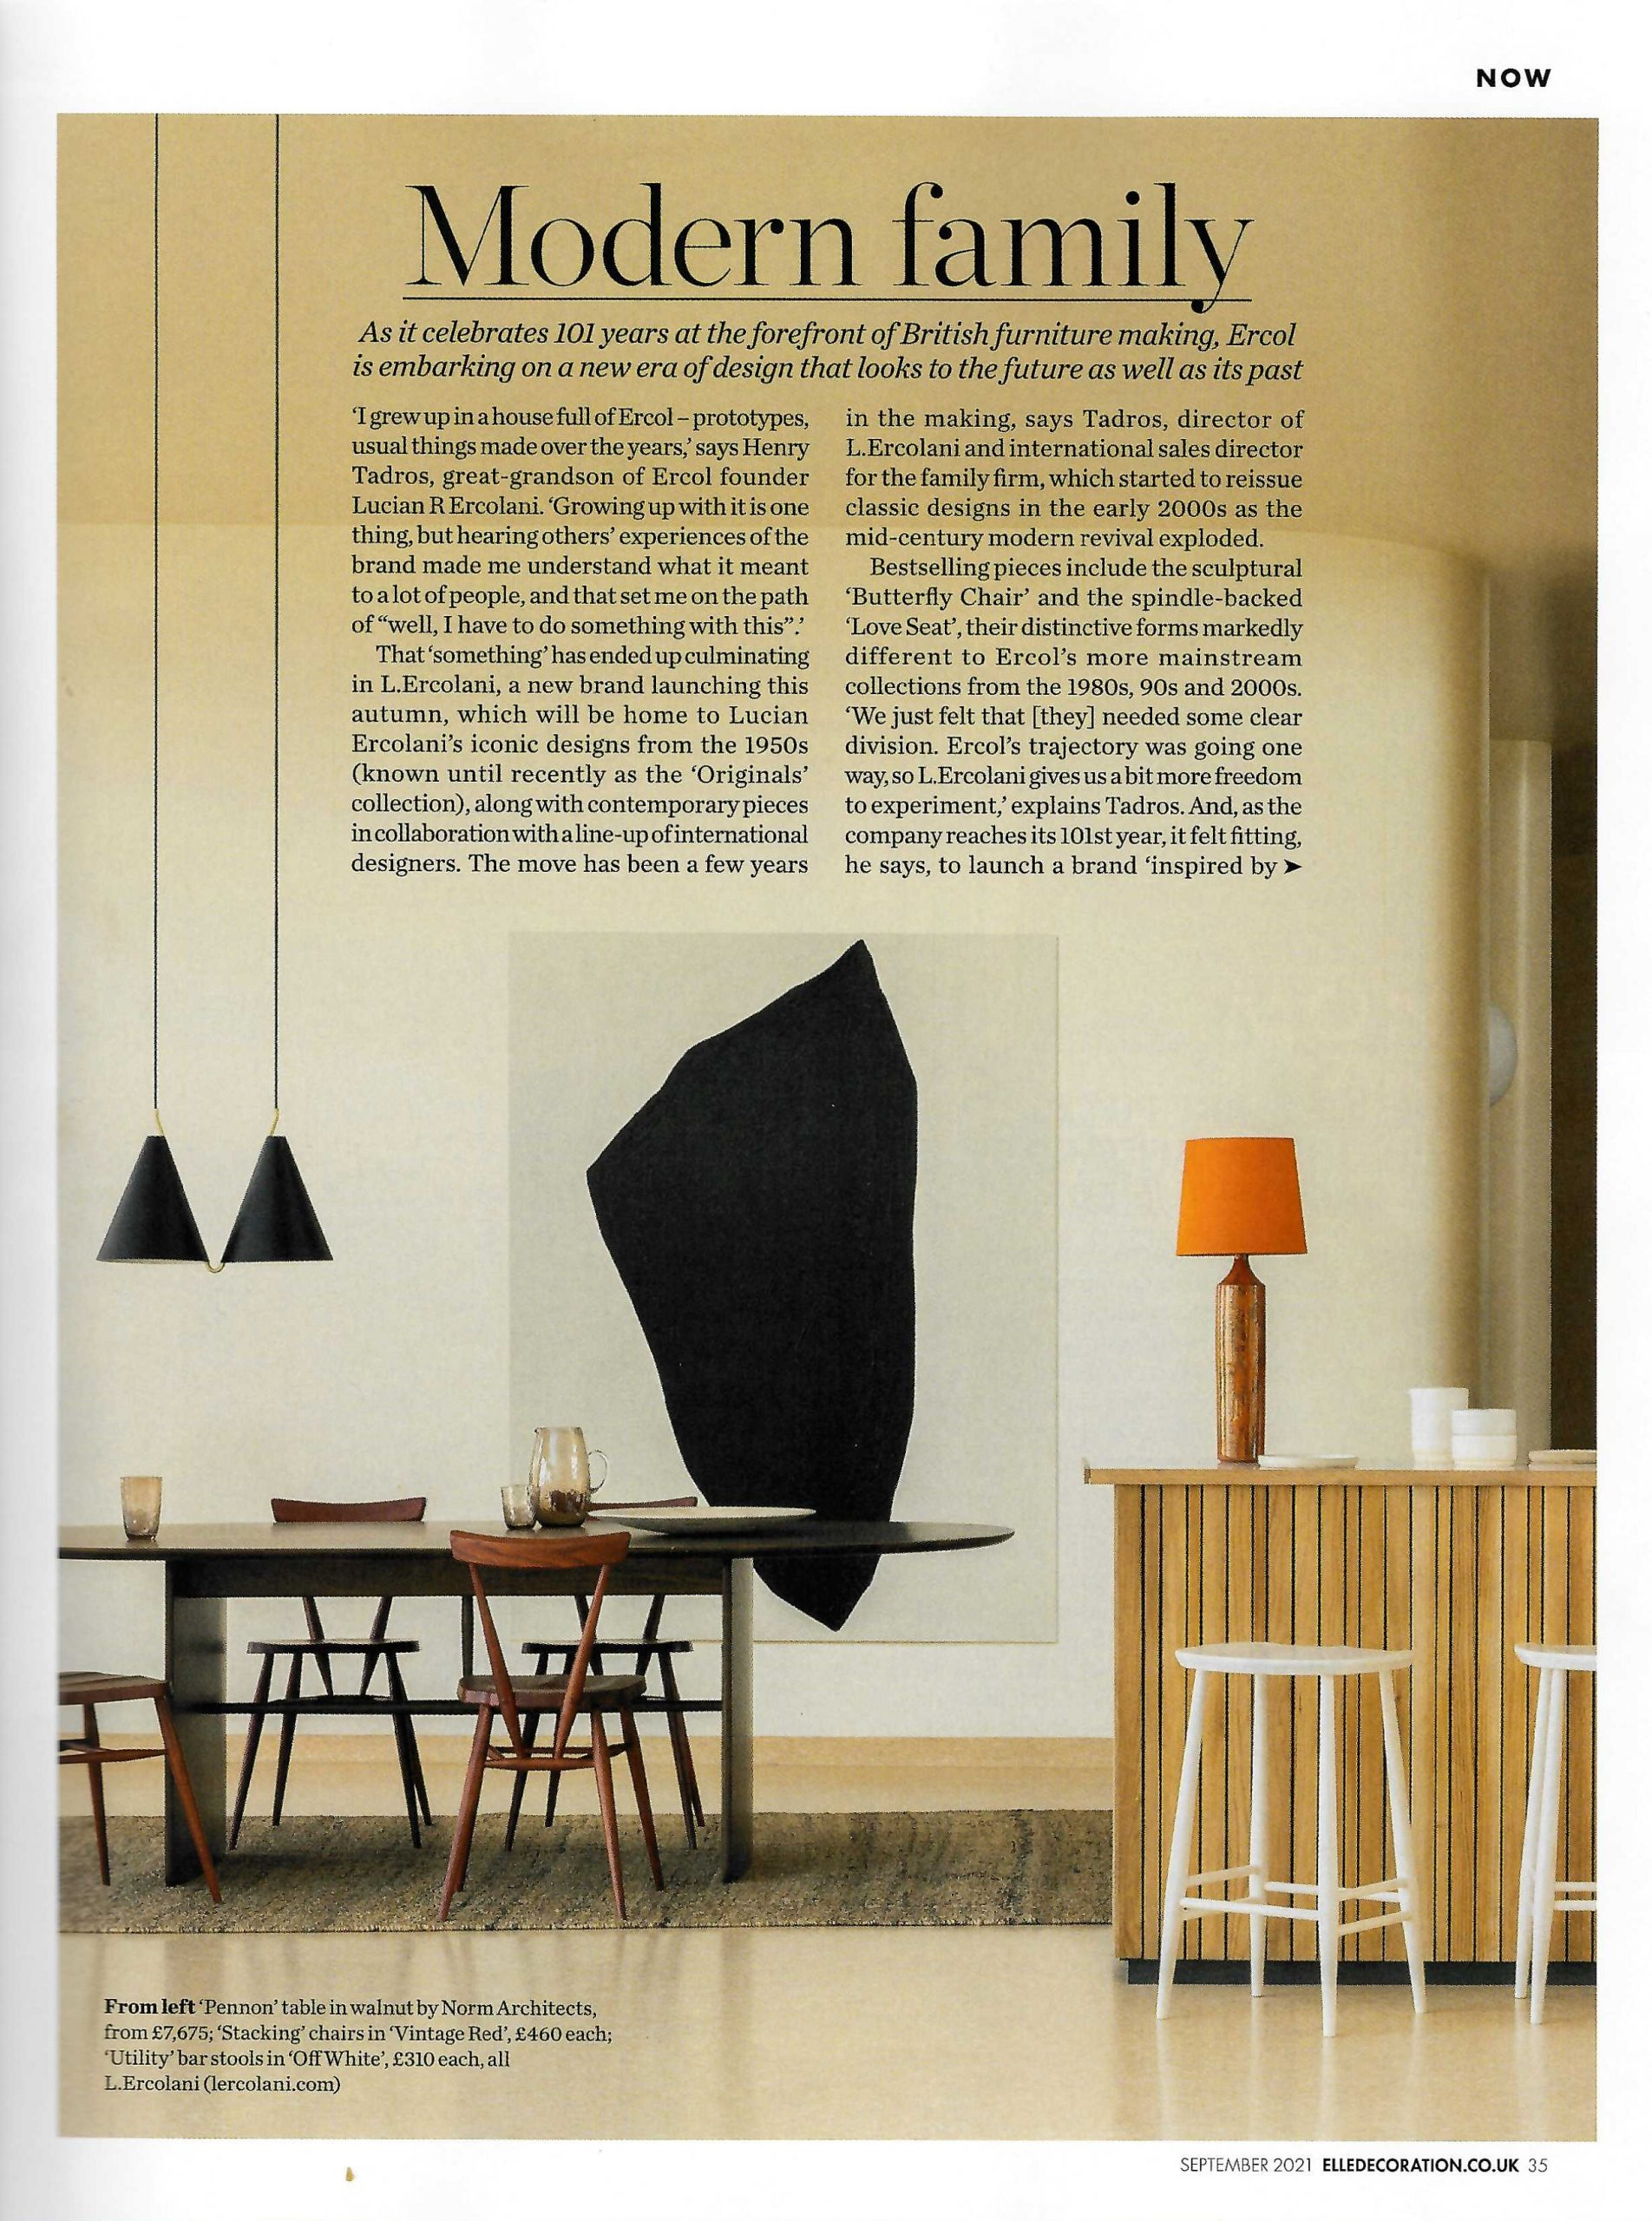 Introducing L.Ercolani, the new refined luxury brand from the ercol group. Read all about it in Elle Decoration.